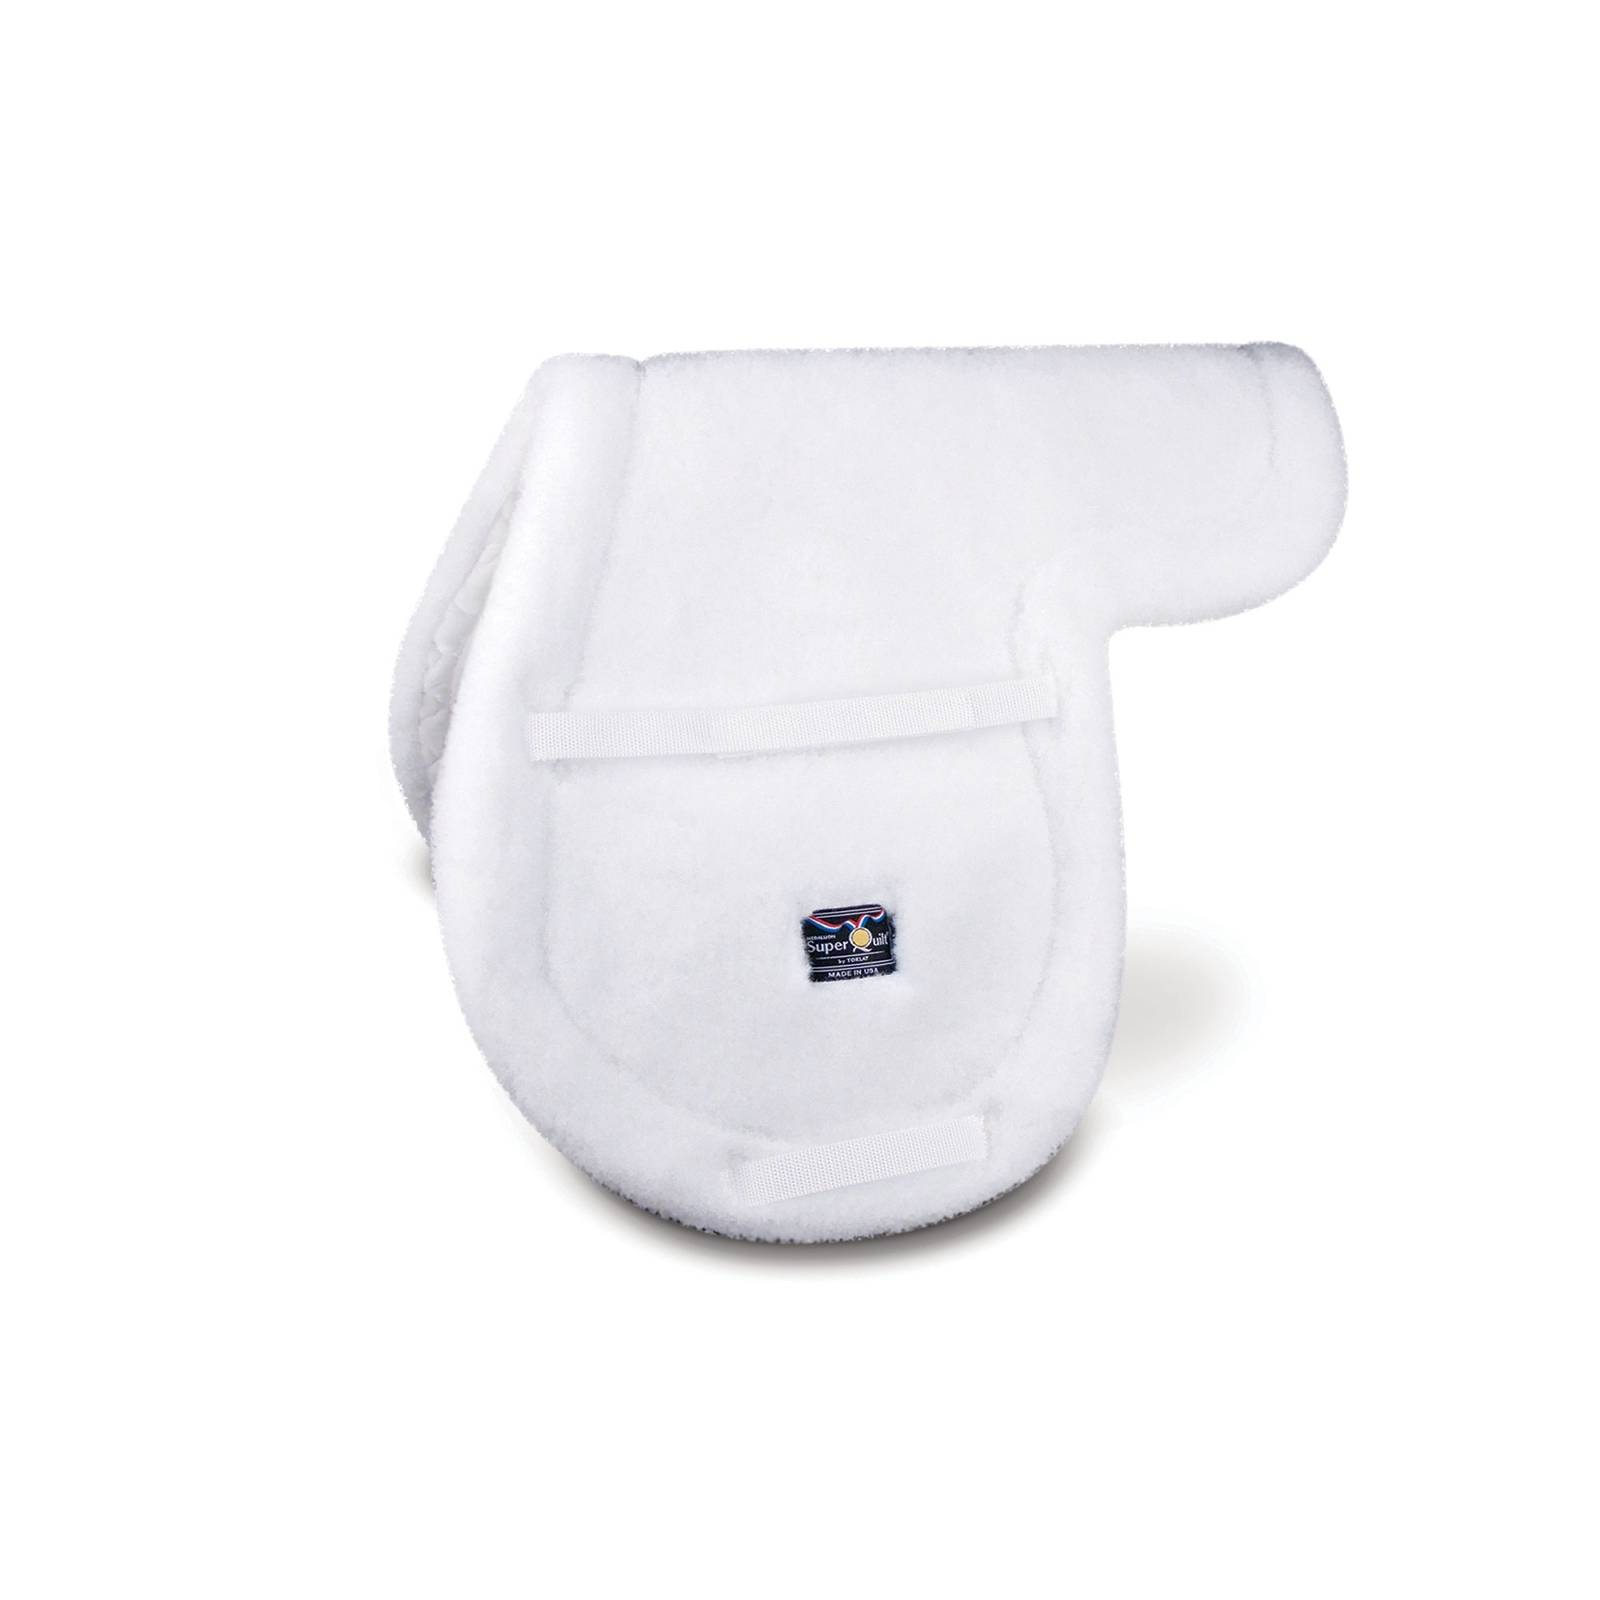 SuperQuilt Childs Pessoa Close Contact Saddle Pad